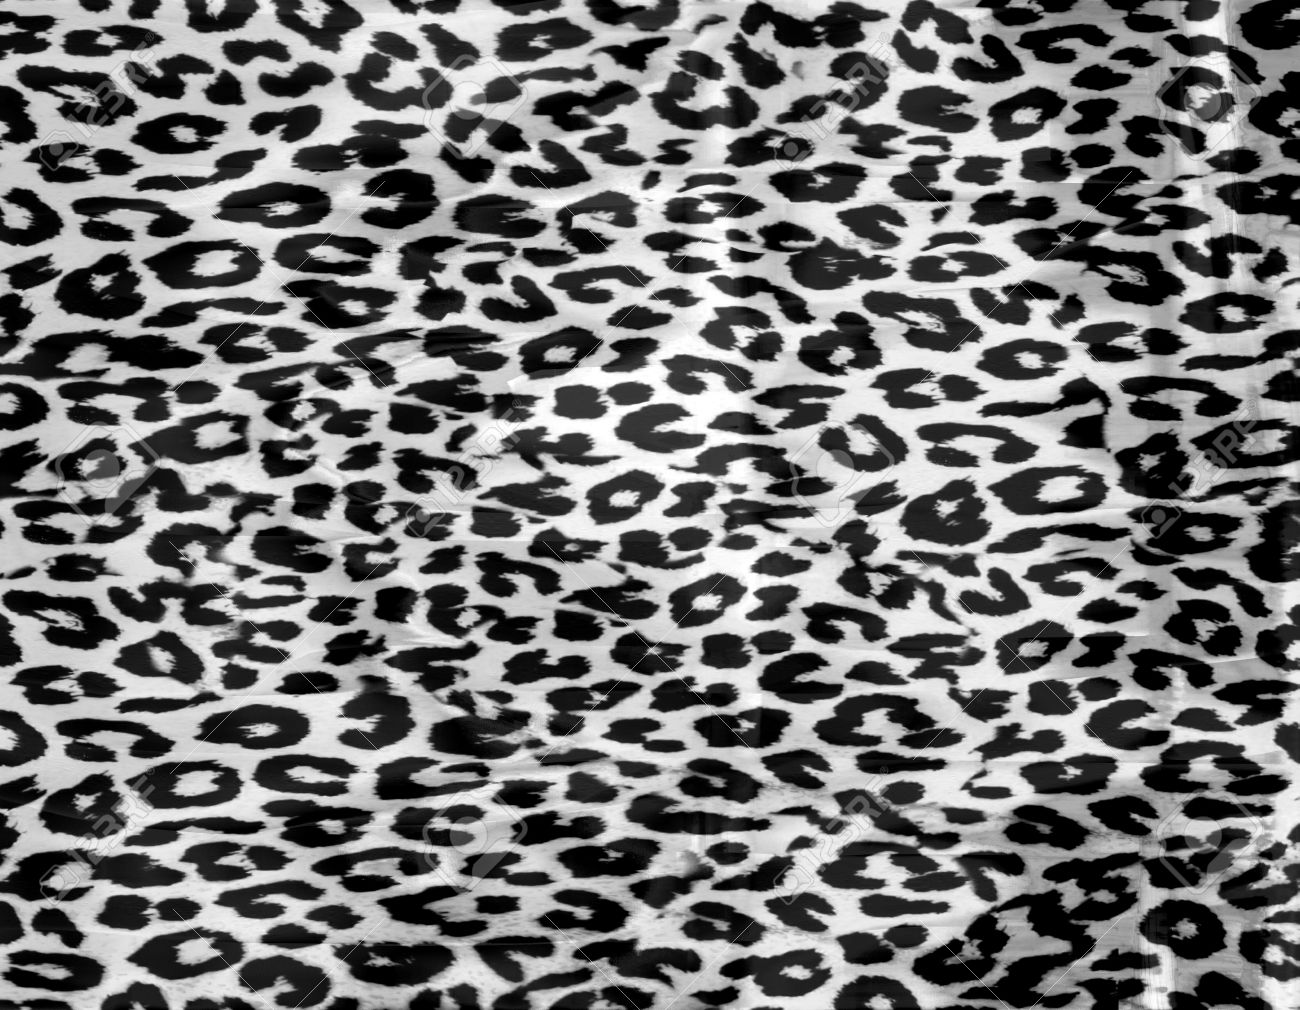 Black and white leopard print background stock photo 15230664